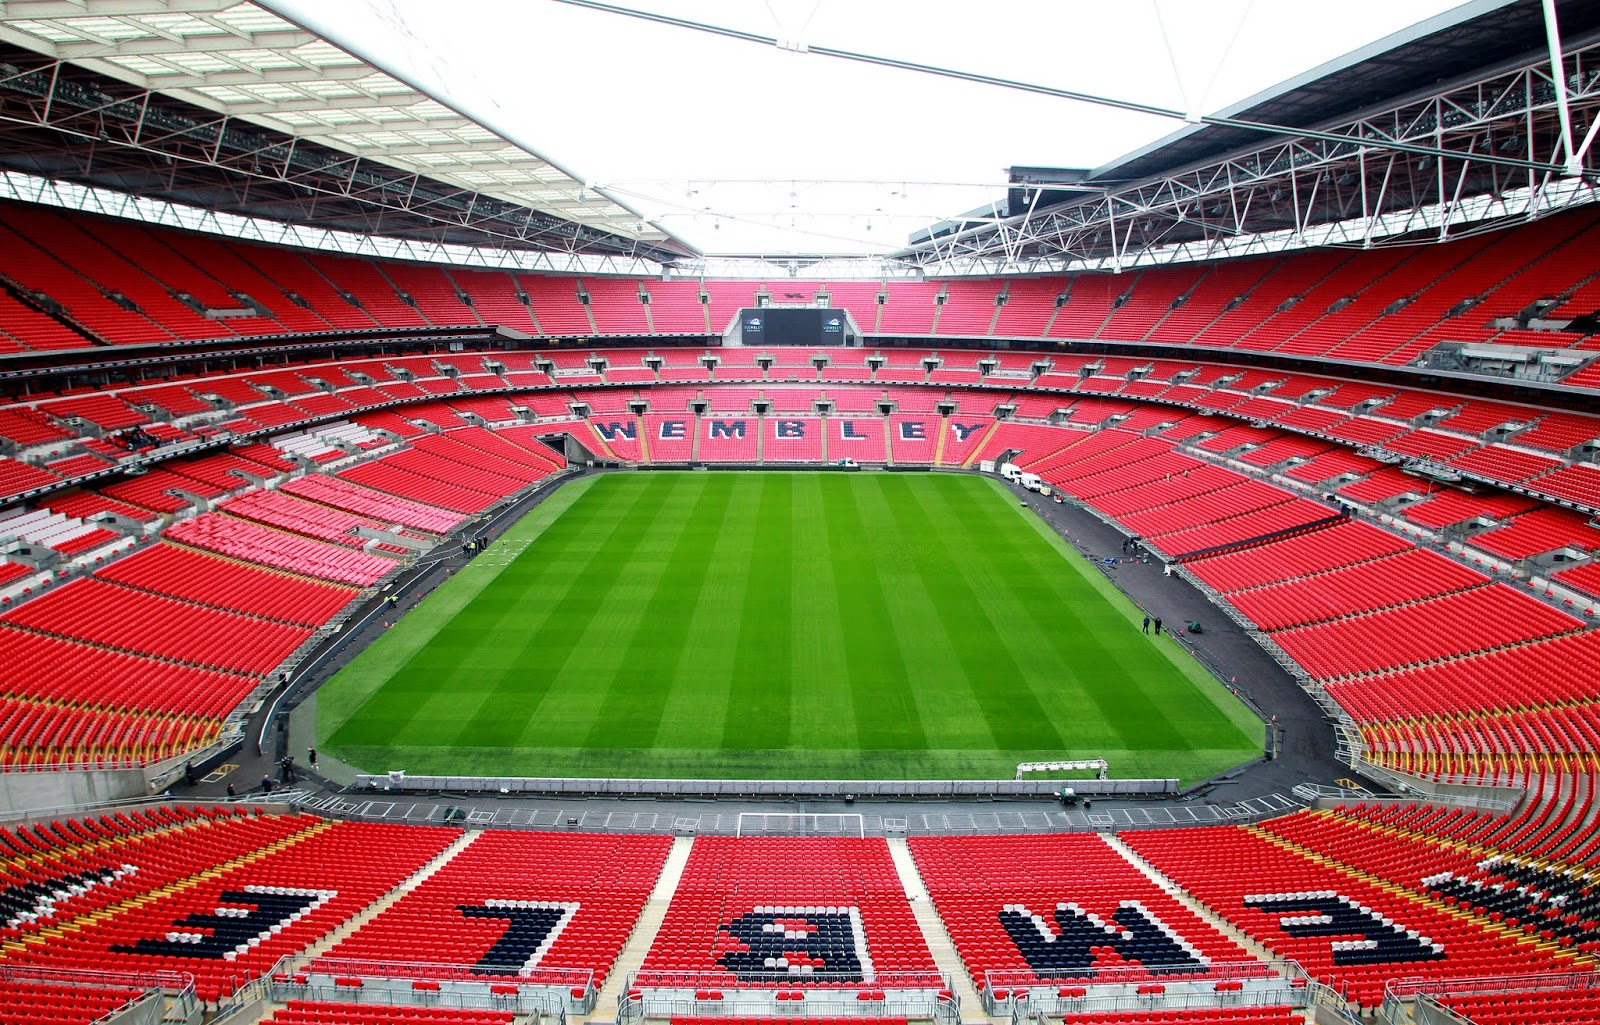 Best football Stadiums in world